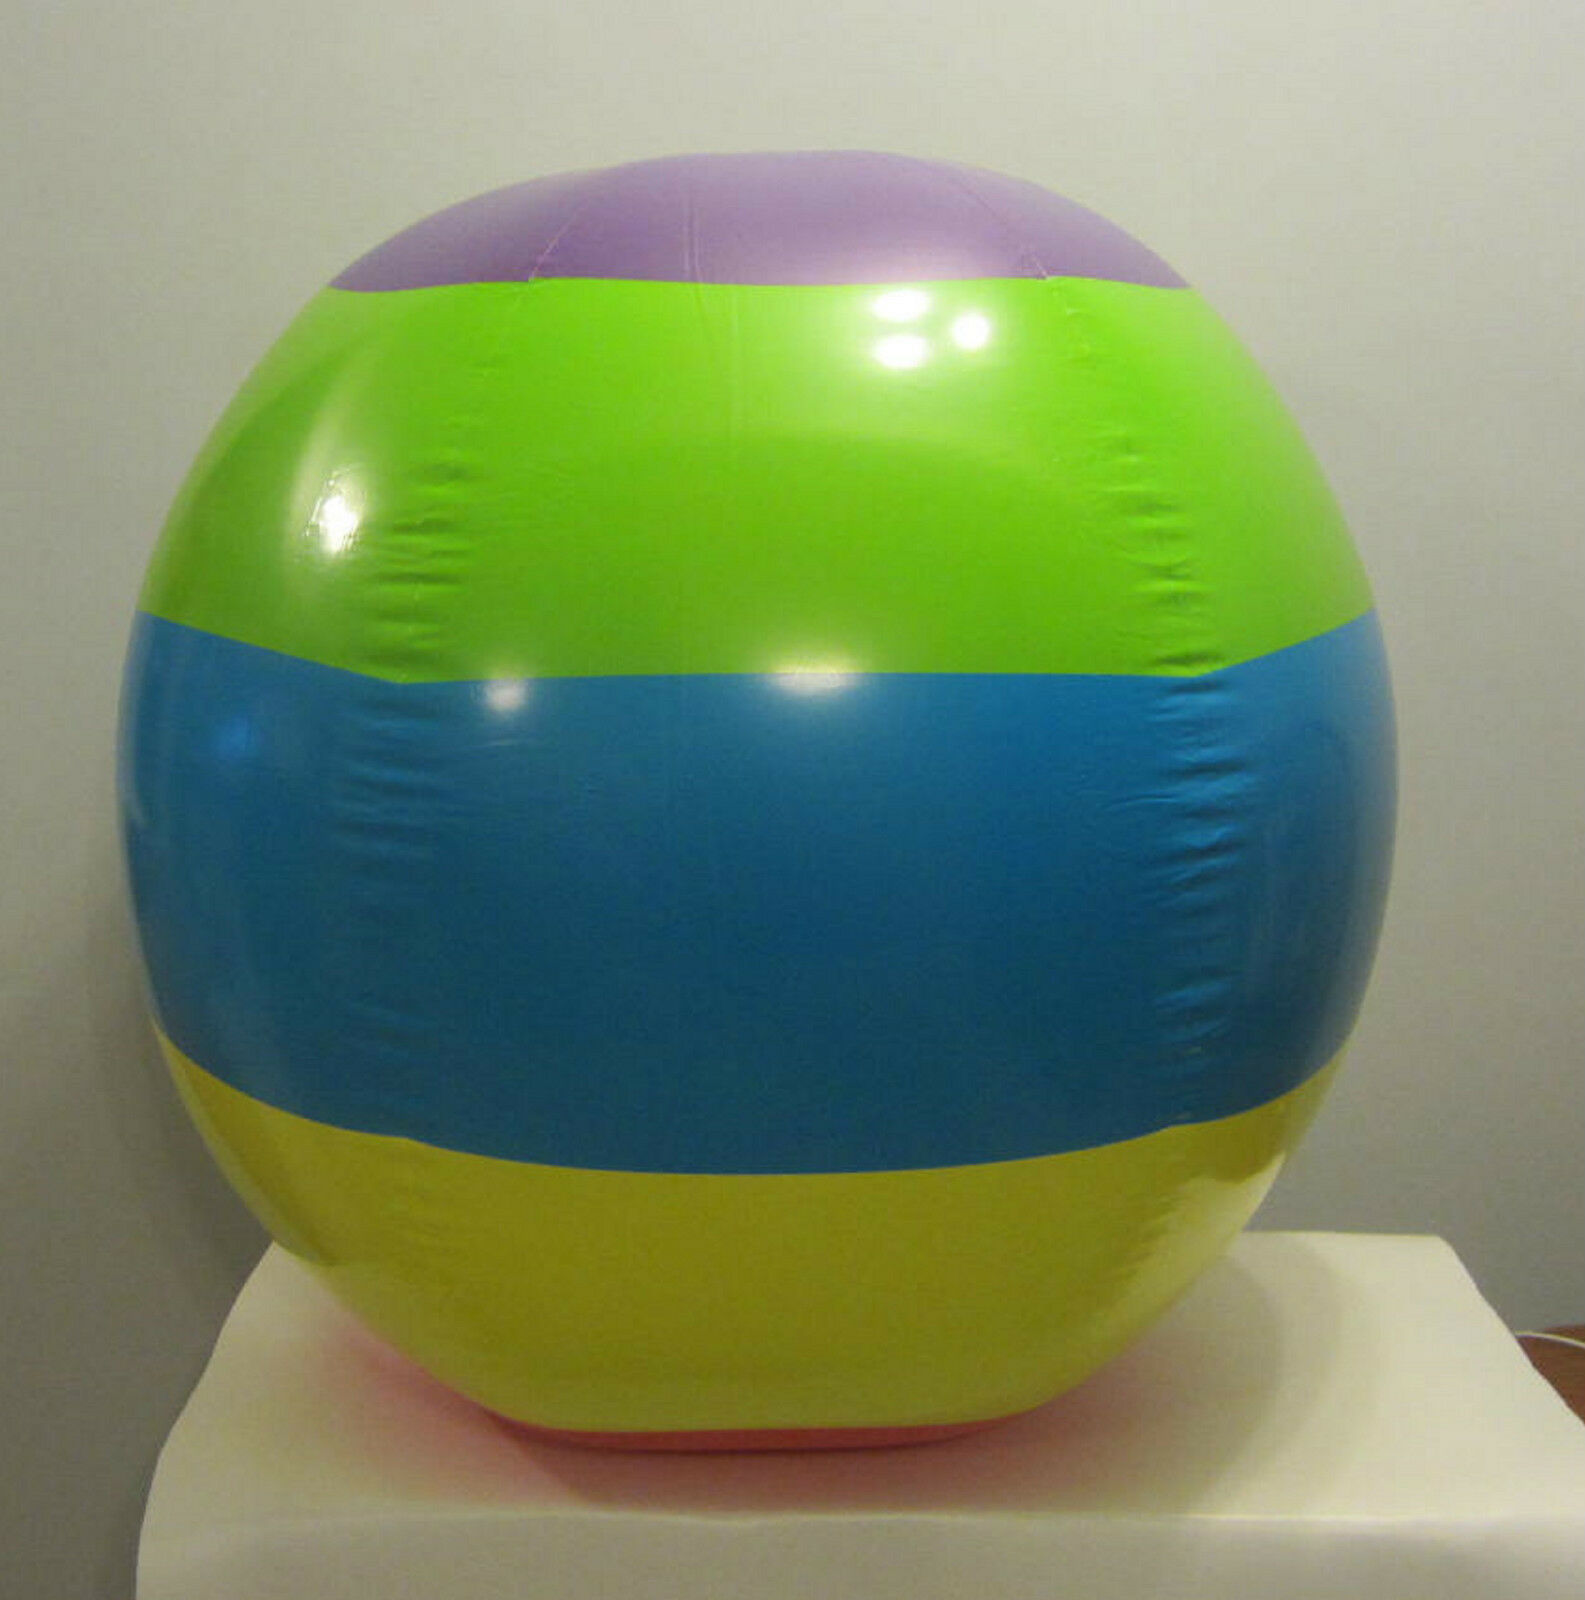 8 NEW JUMBO 48 48 48  INFLATABLE MULTI colorD GIANT BEACH BALLS POOL PARTY BEACHBALL 5dcfe2